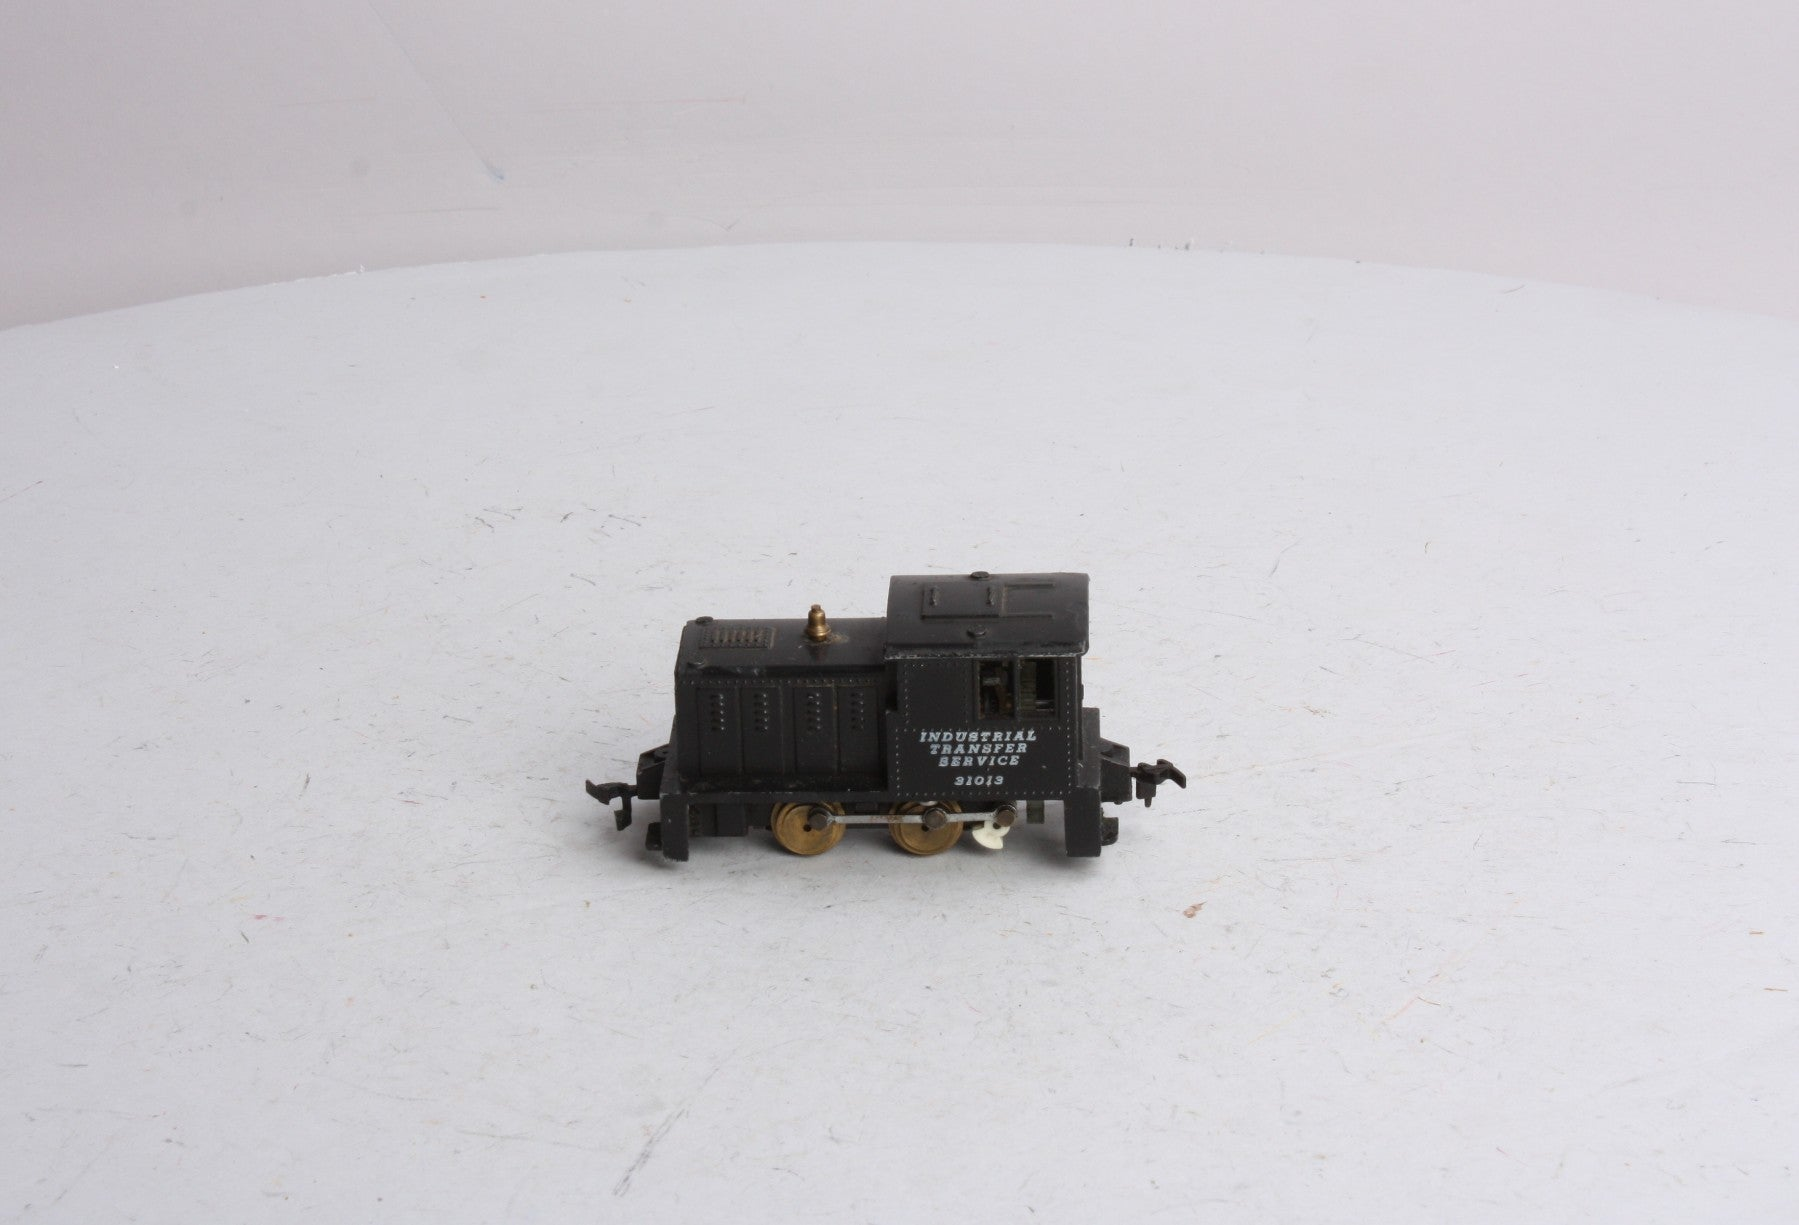 Https Products 3rd Rail 5694 Prr B 1 Electric Switcher 48205 4wire Flat Connector Vehicle To Trailer Wiring 20120827 083415 C1 Trainz 3450621 00v1489079977